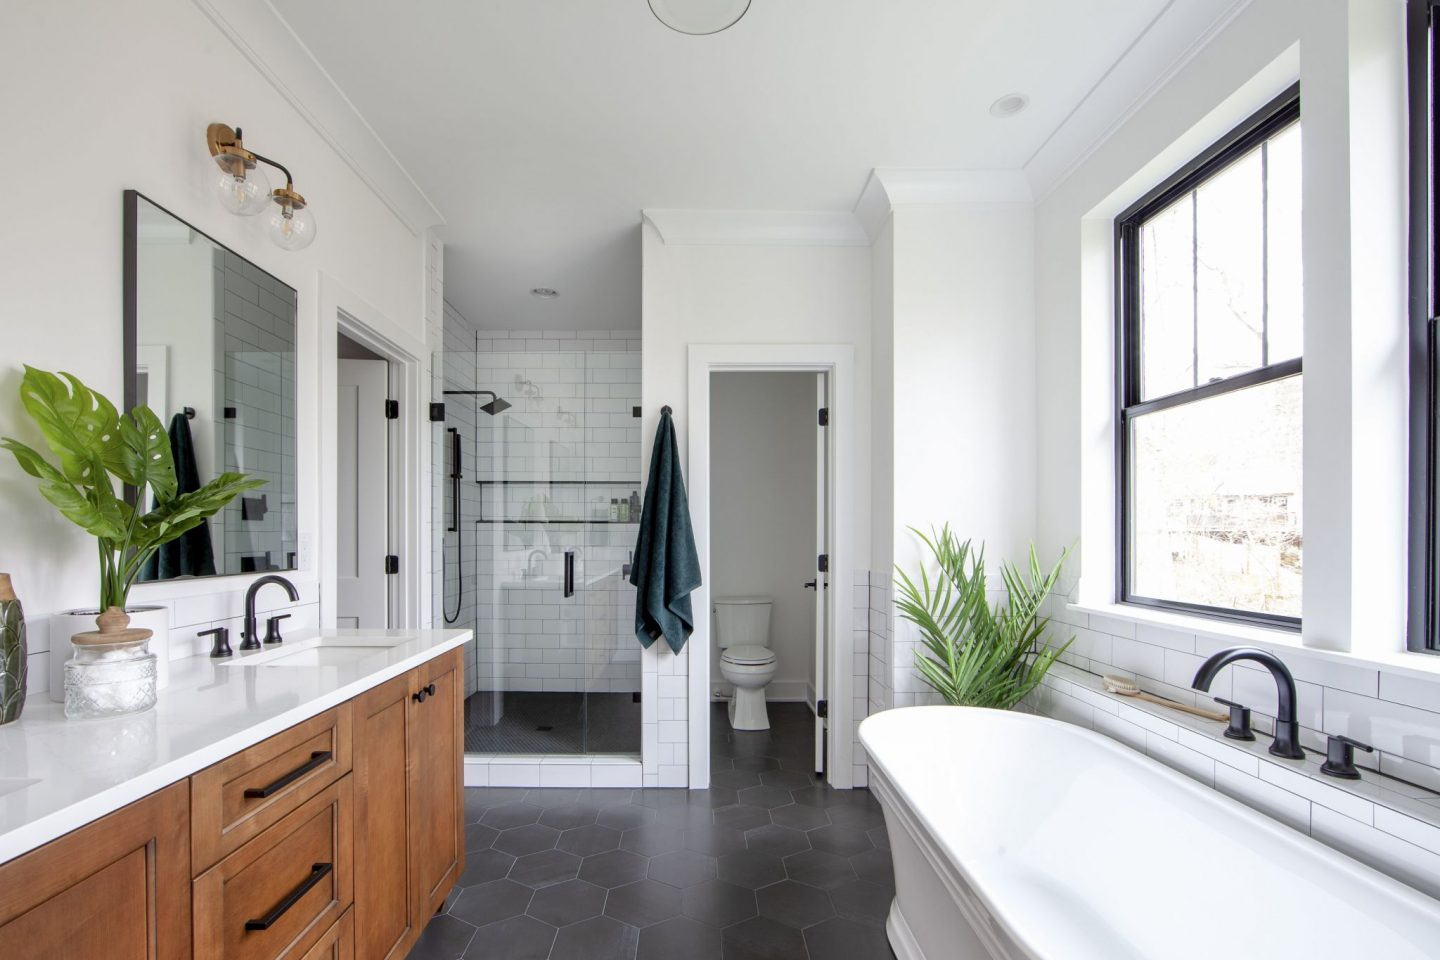 luxury master bathroom - modern farmhouse - Chelsea building group - Schwaiger Realty Group - Charlotte, NC Real Estate